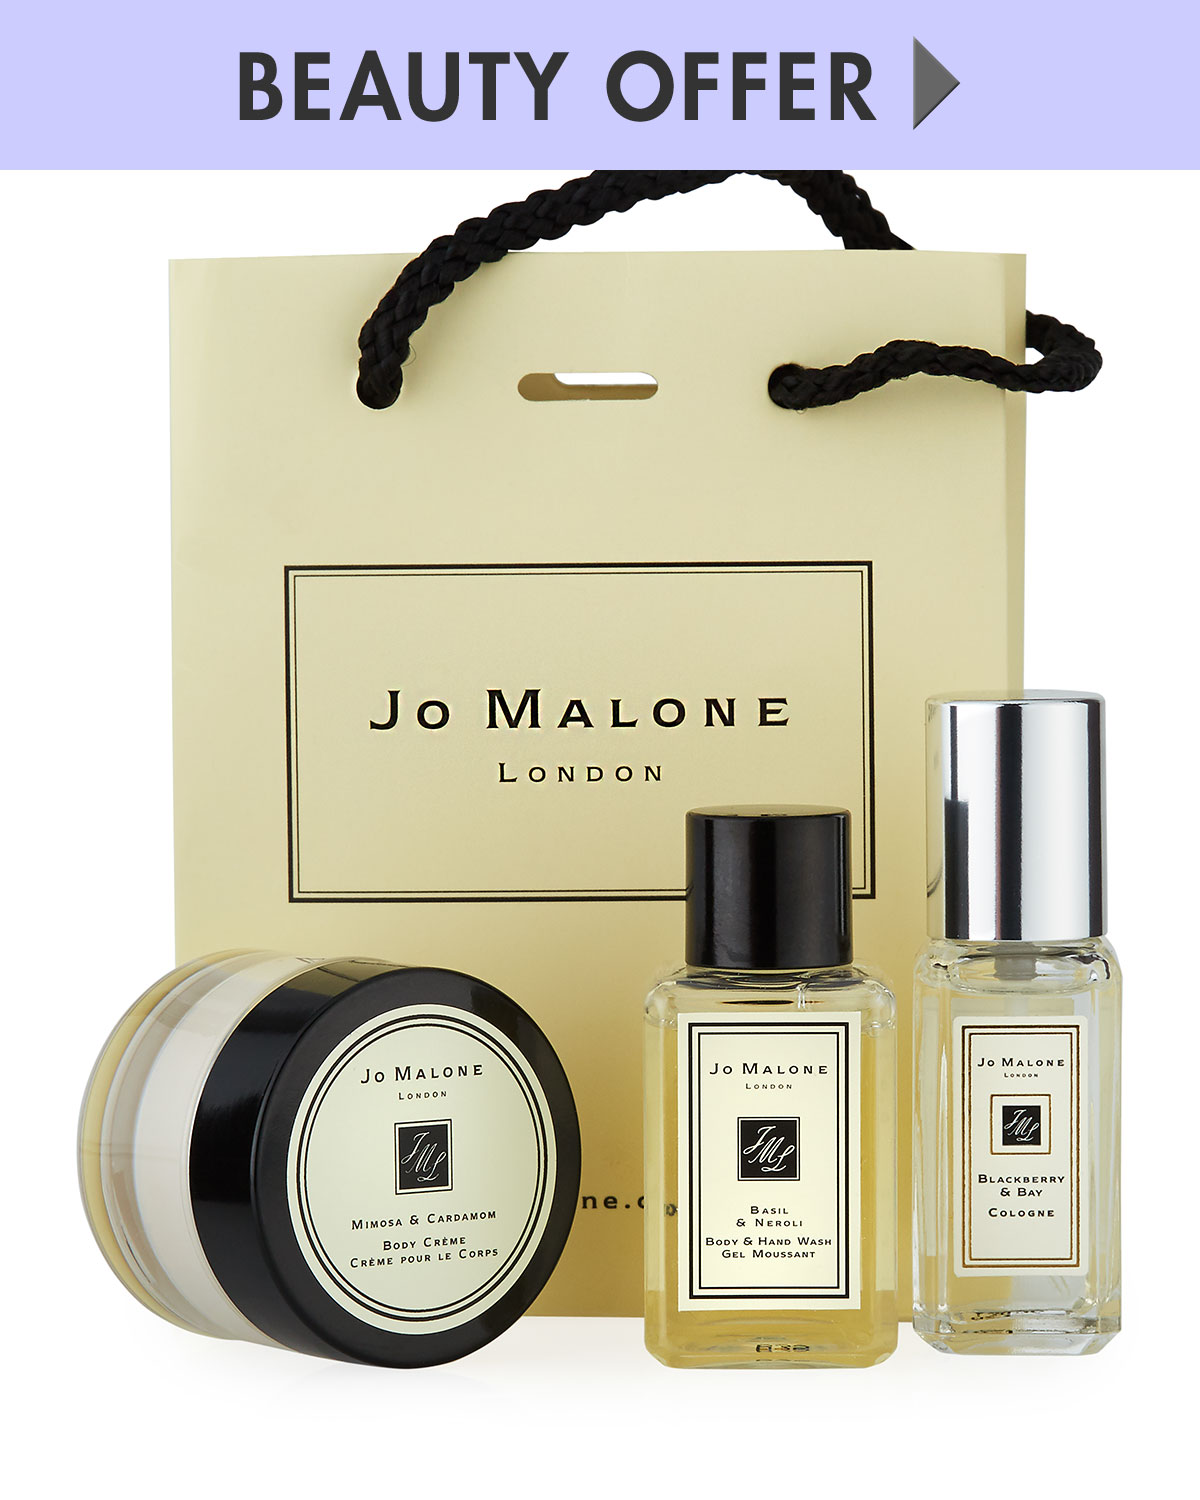 Jo Malone London Yours With Any 130 Jo Malone London Purchase